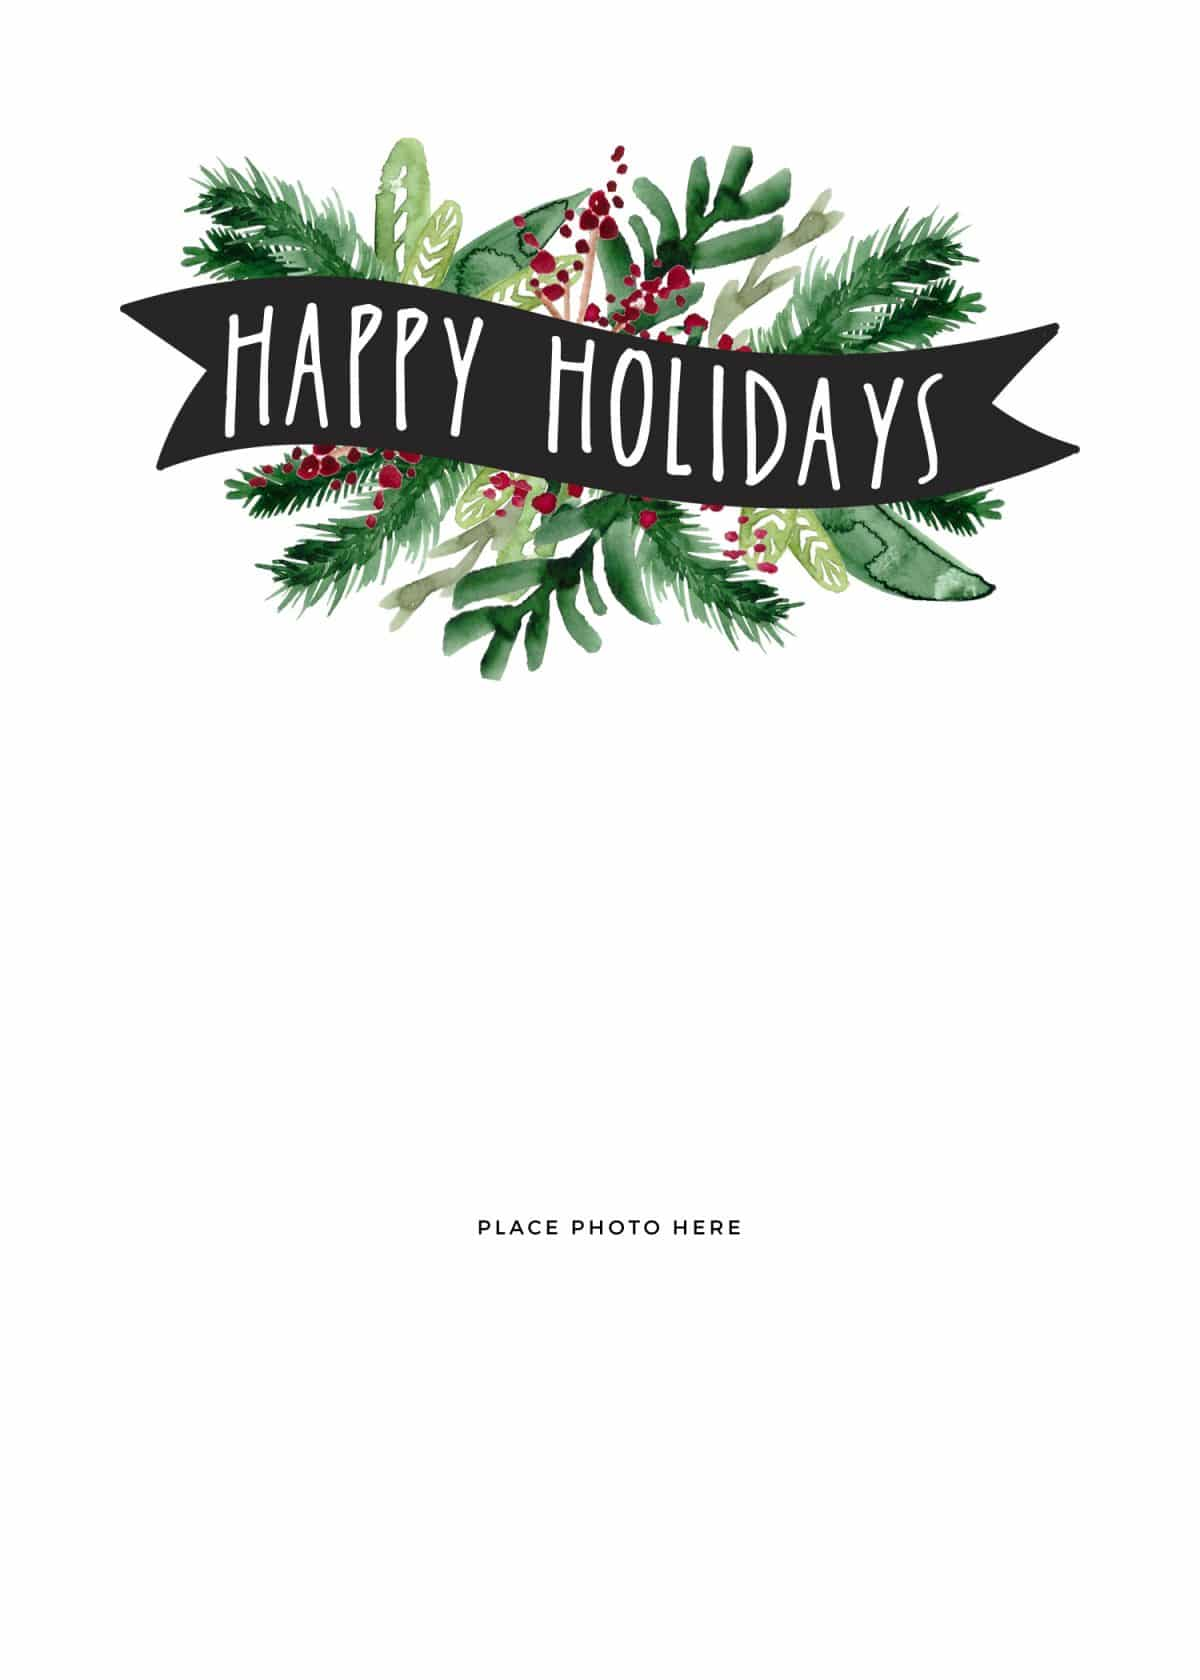 70 Free Christmas Card Templates Download Maker with Christmas Card Templates Download